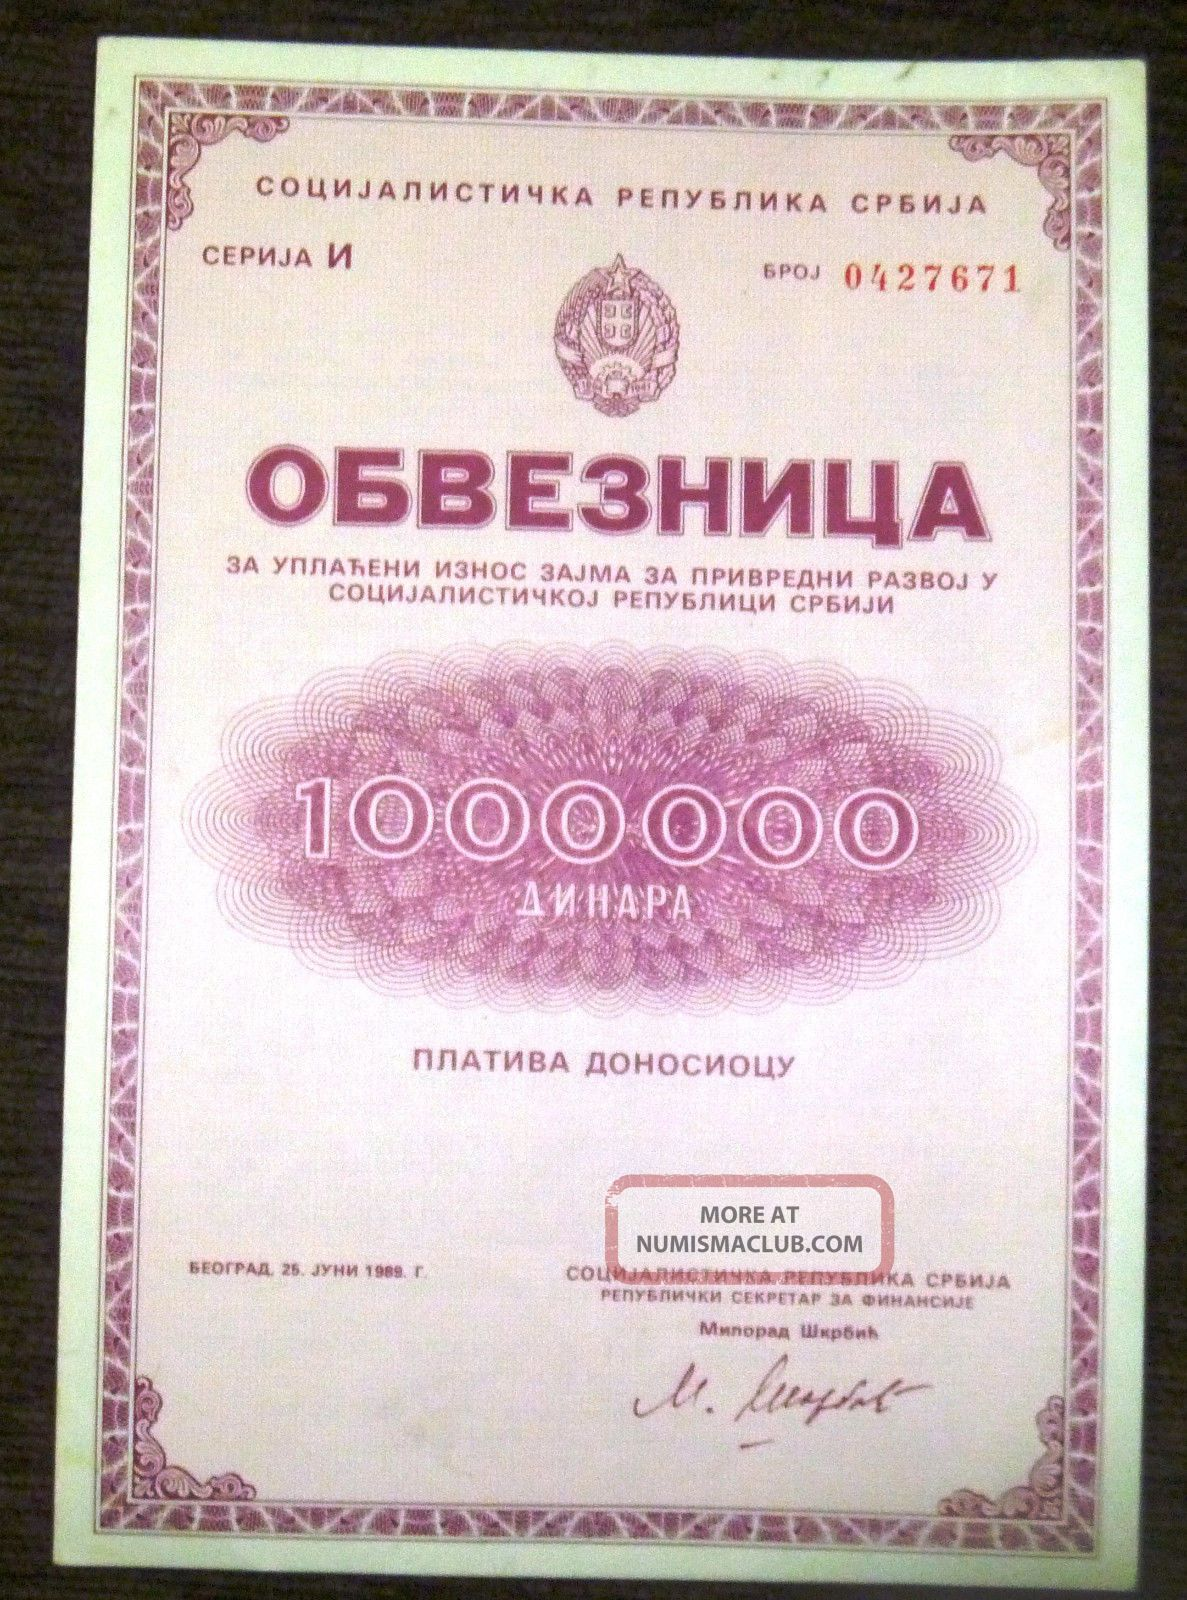 Bond For Paid Economic Development In The Socialist Republic Of Serbia 1 Milion Stocks & Bonds, Scripophily photo